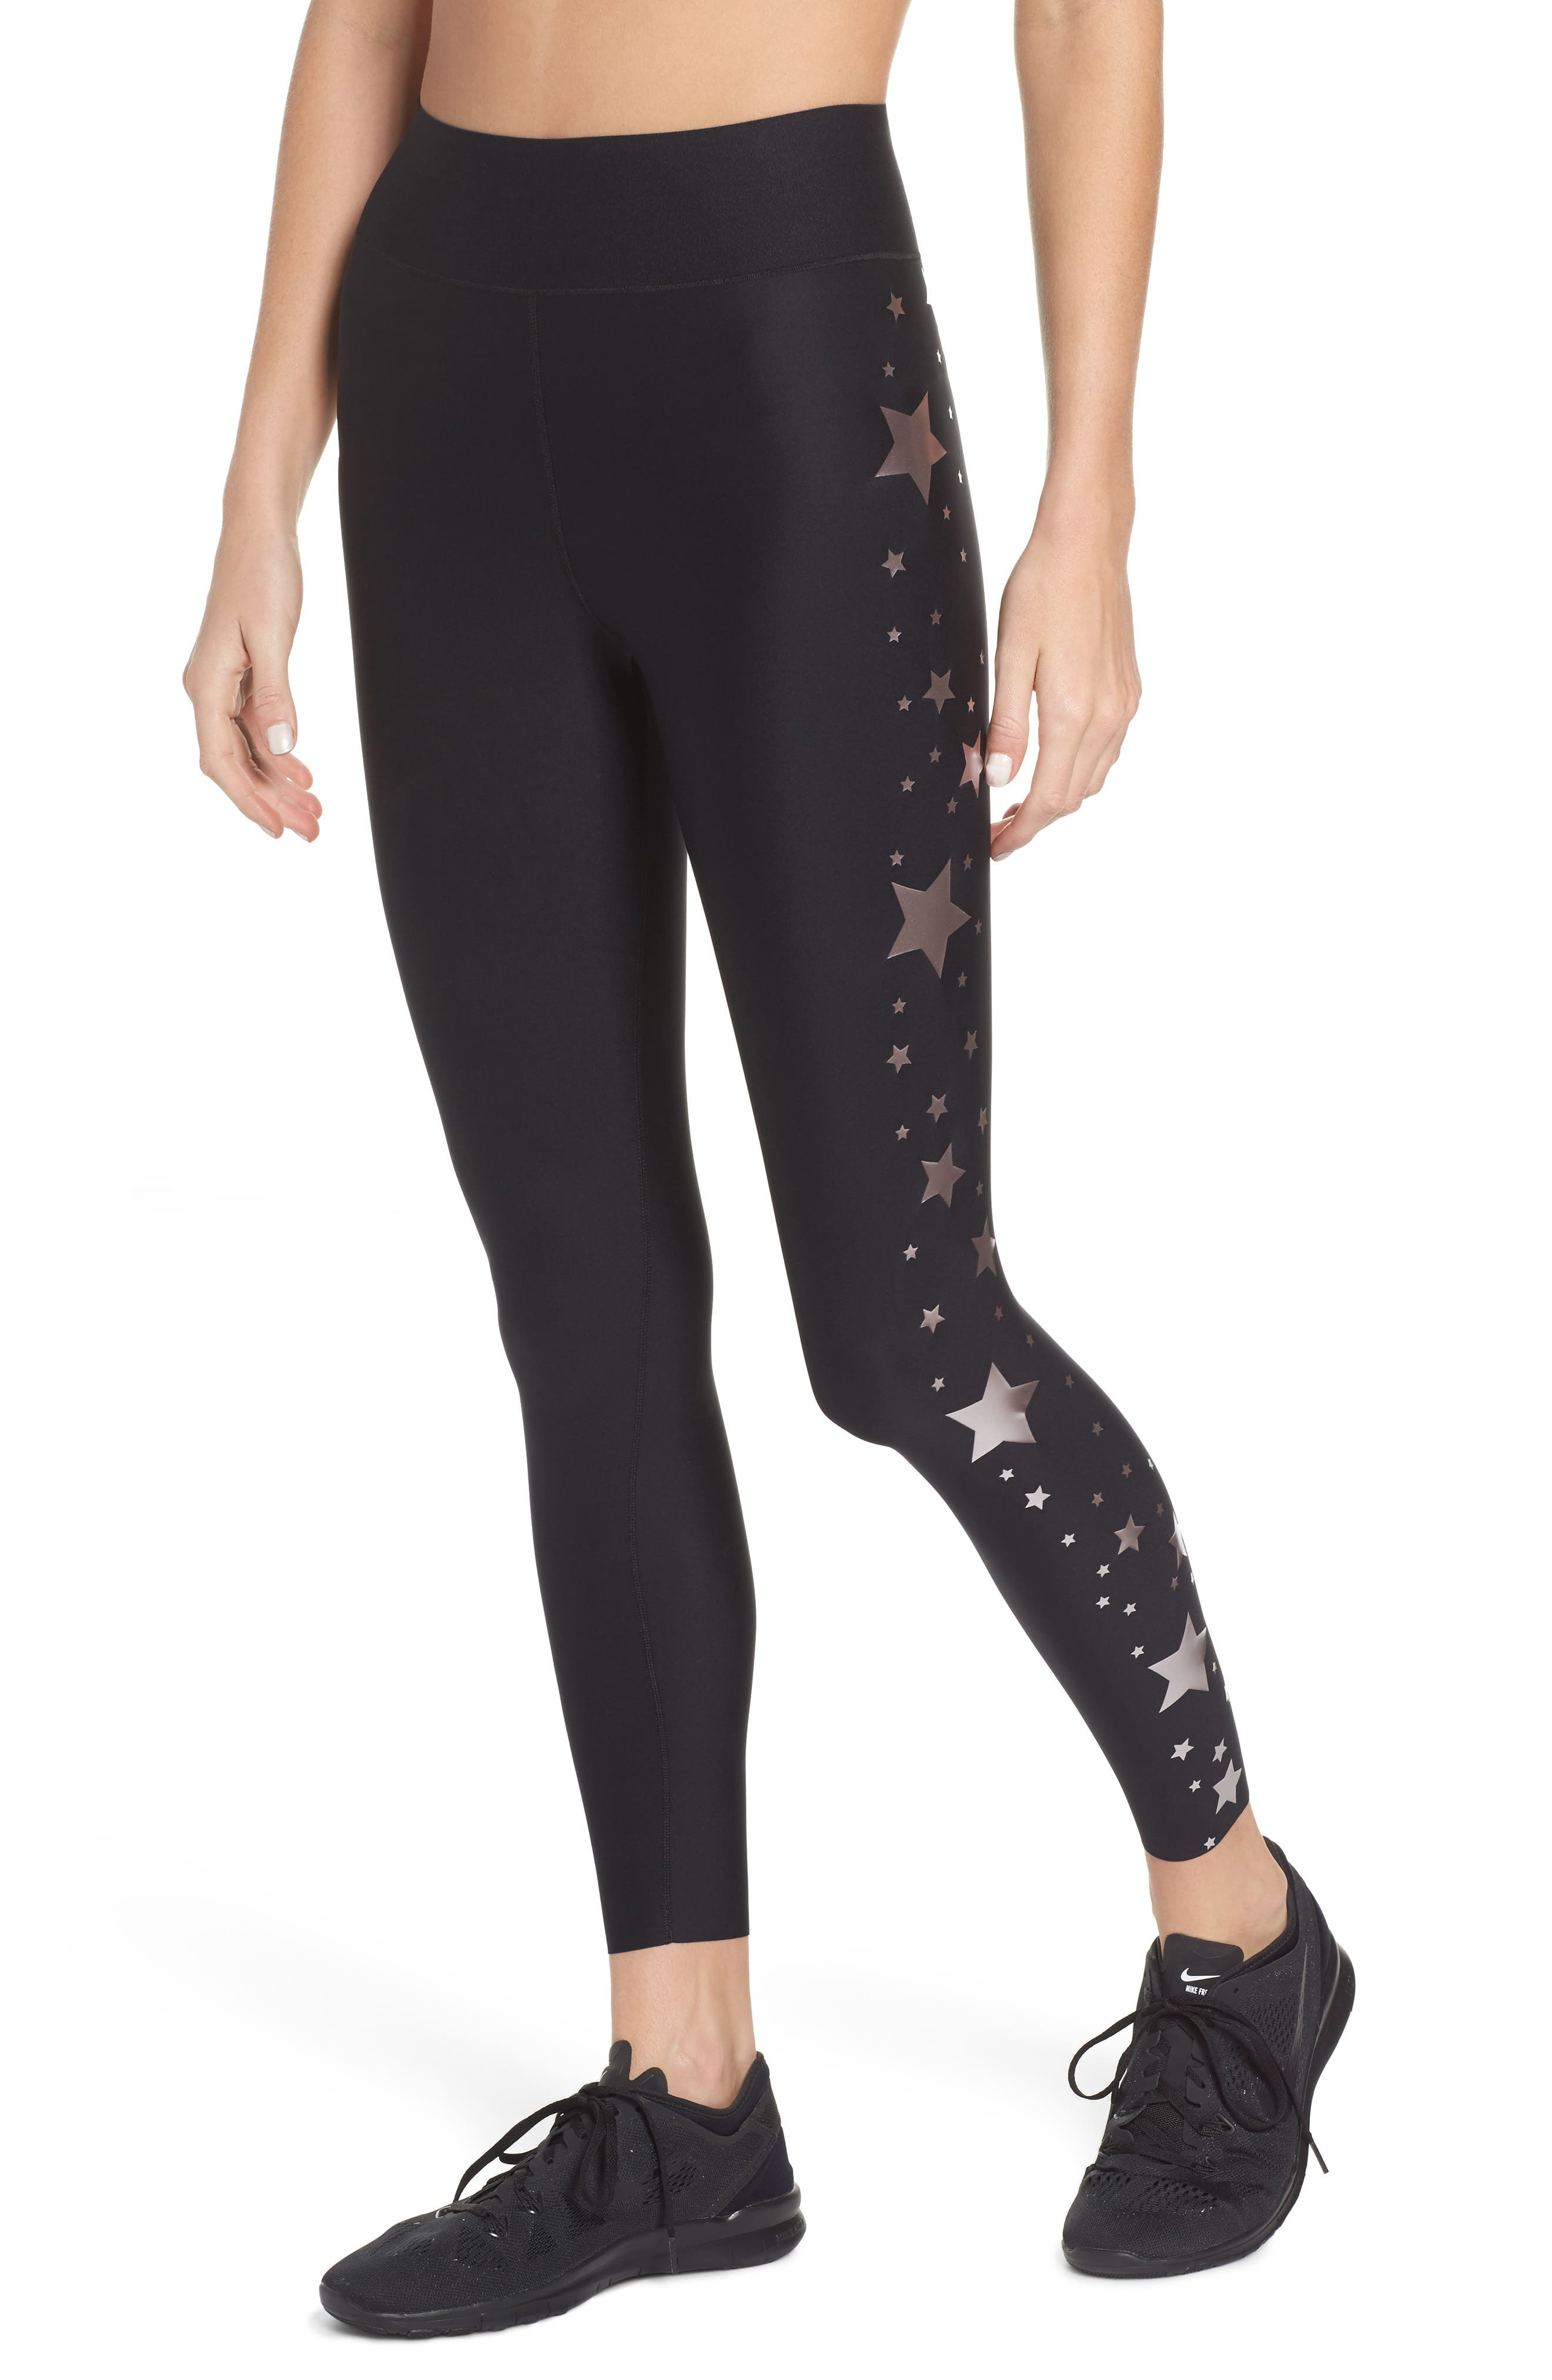 Lux Stellar High Waist Leggings,                             Main thumbnail 1, color,                             Nero Rose